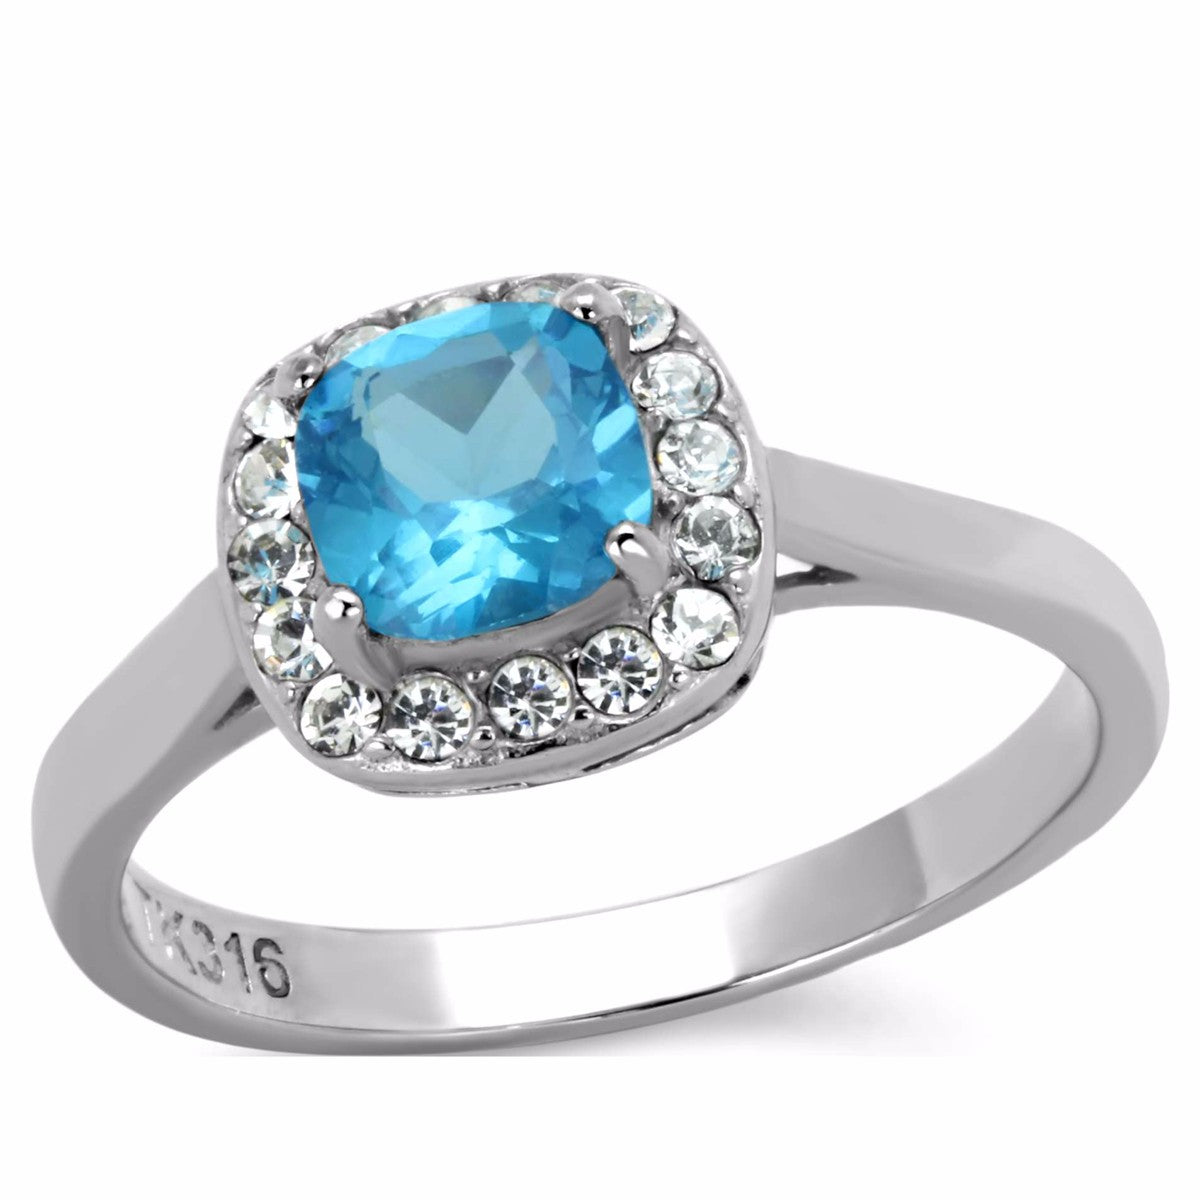 Women's 6x6mm Cushion Cut Sea Blue CZ Center Stainless Steel Cocktail Ring - LA NY Jewelry